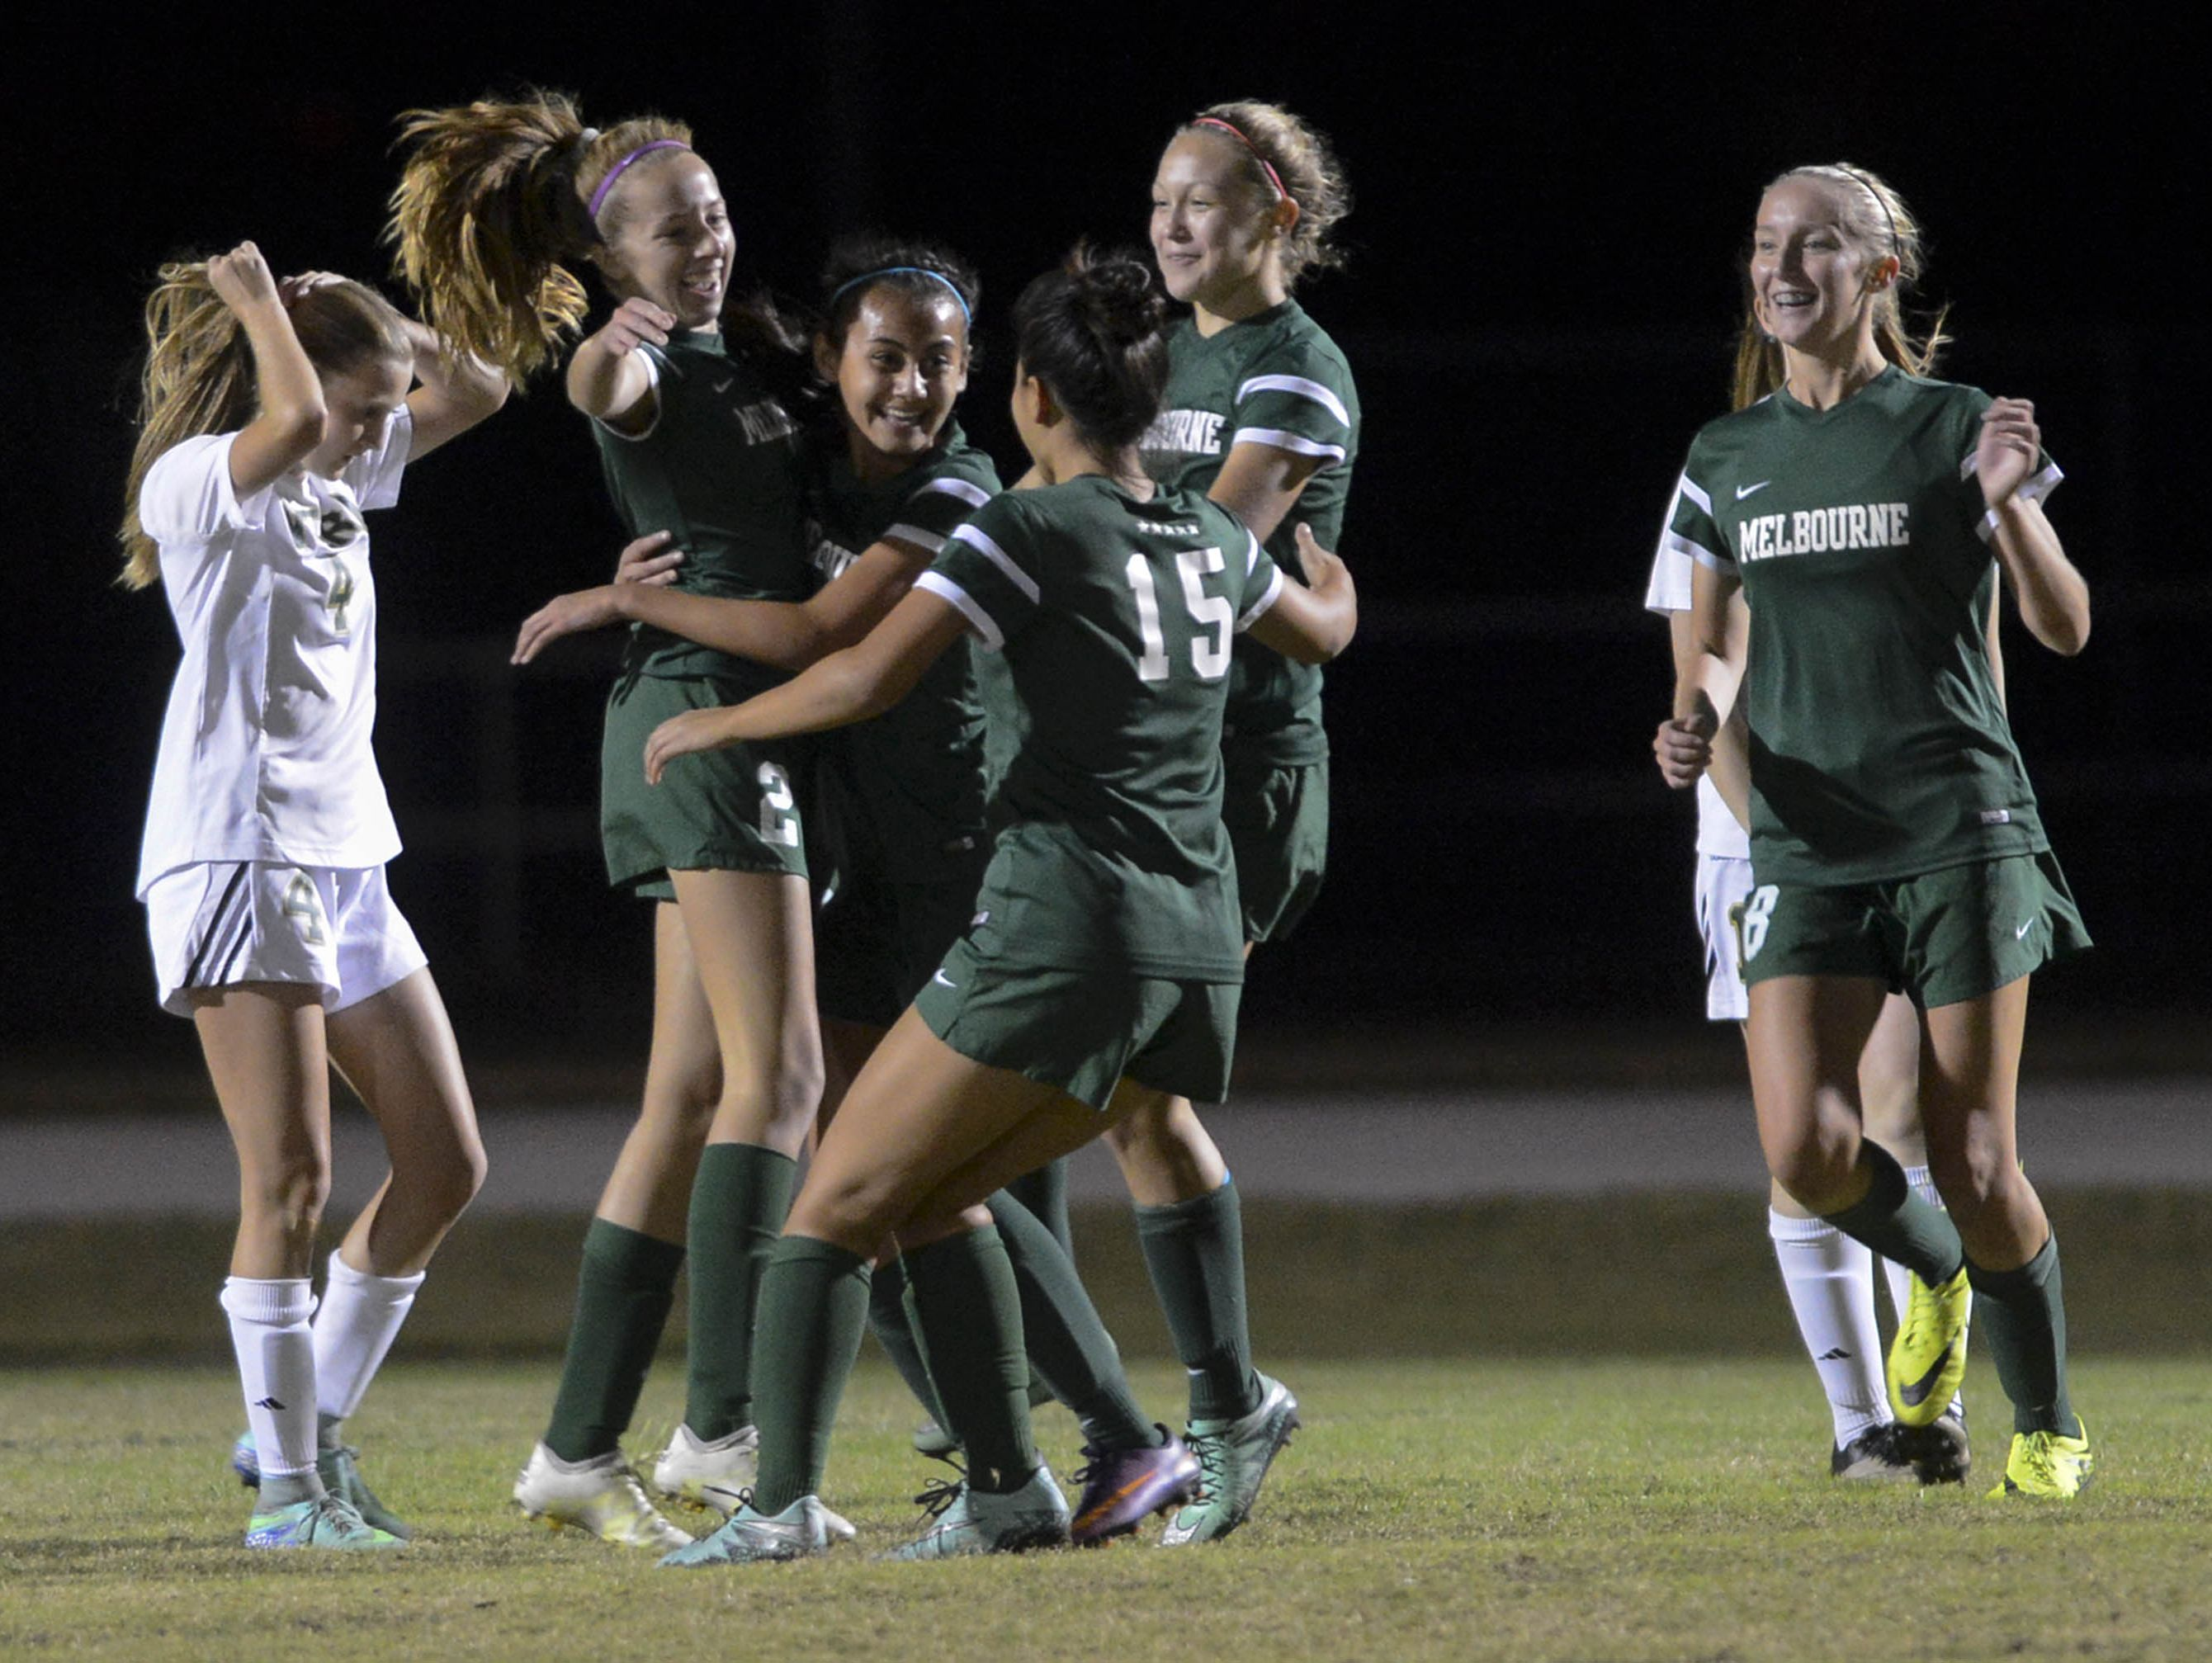 Melbourne players celebrate a first half goal during their game against Viera Friday evening.